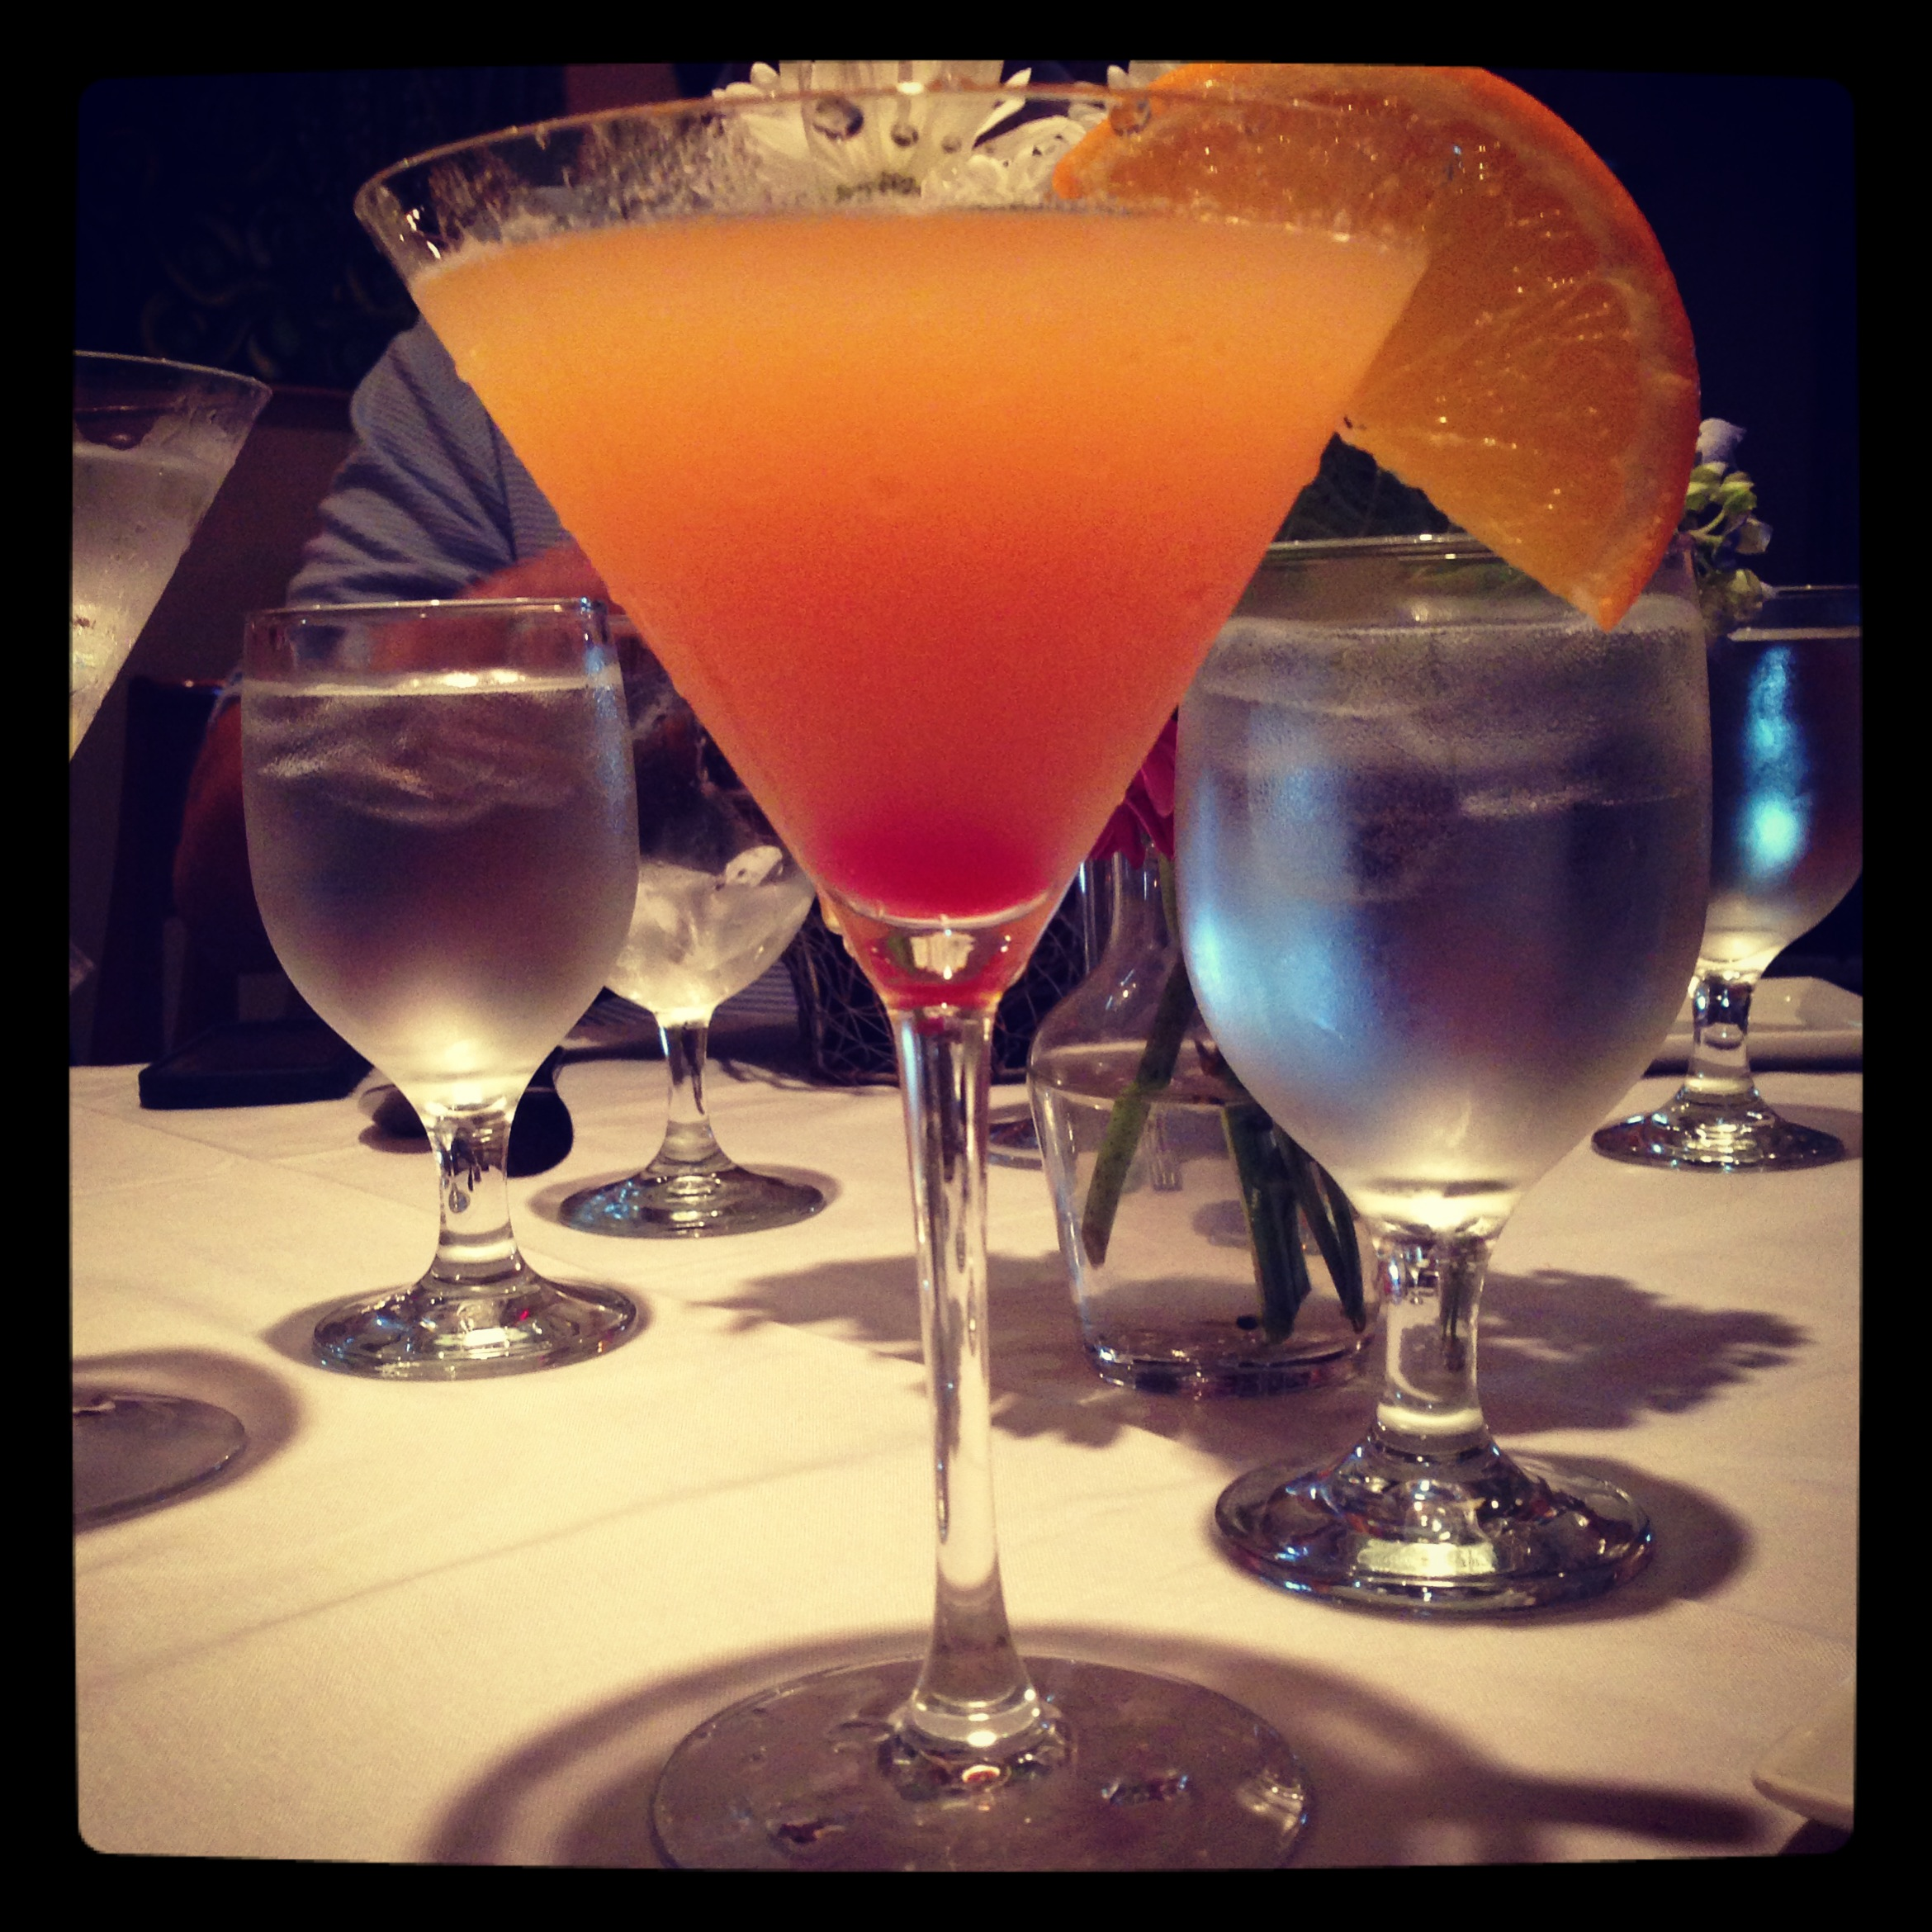 Fresh peach martini with a float of Prosecco!